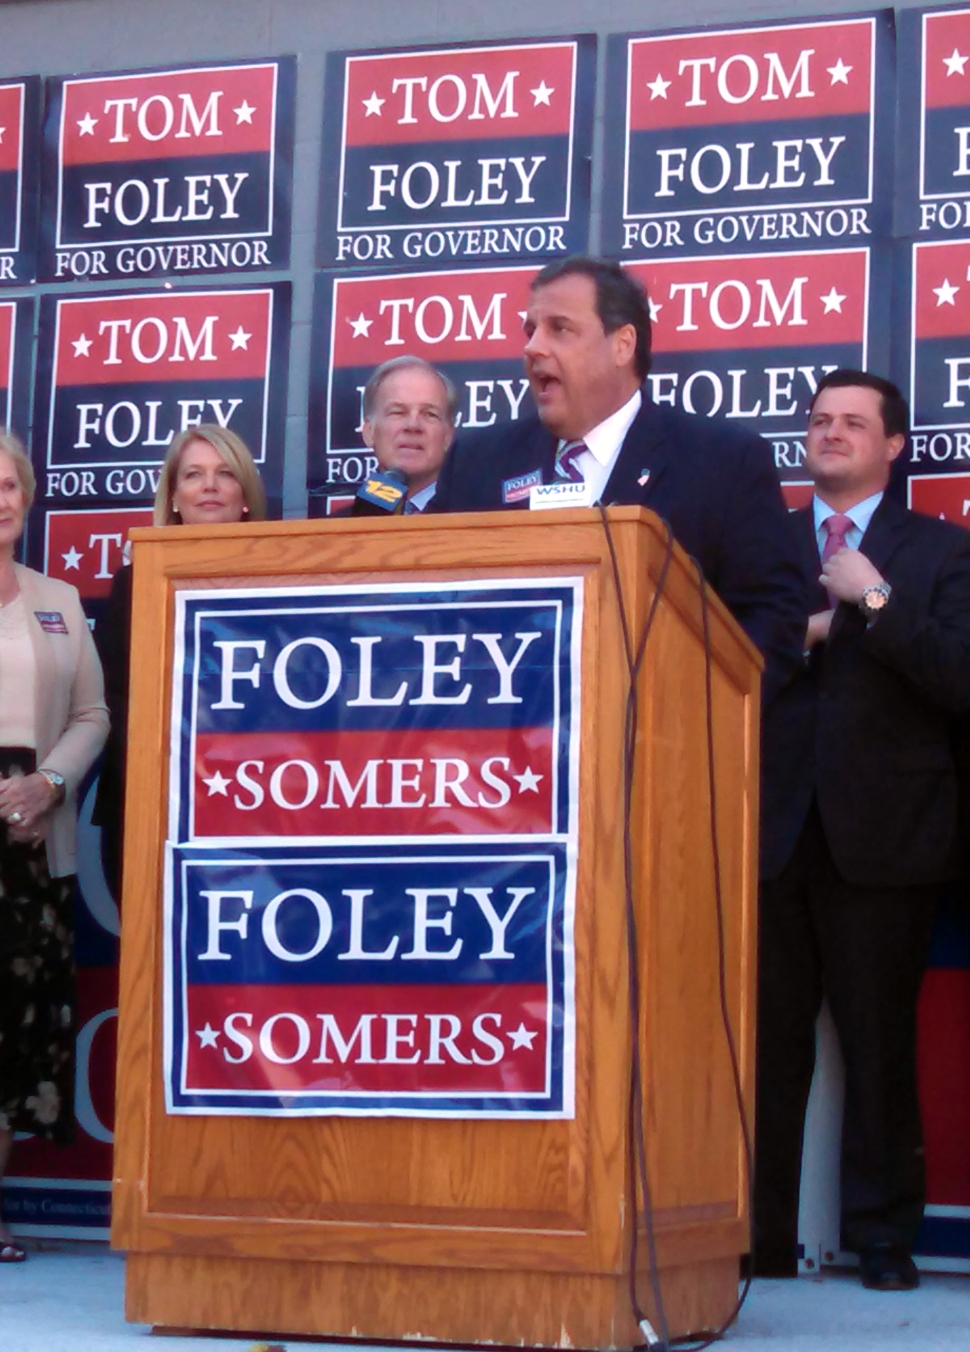 Christie addresses a crowd of Republican supporters outside a Foley field campaign office in Trumble, CT.